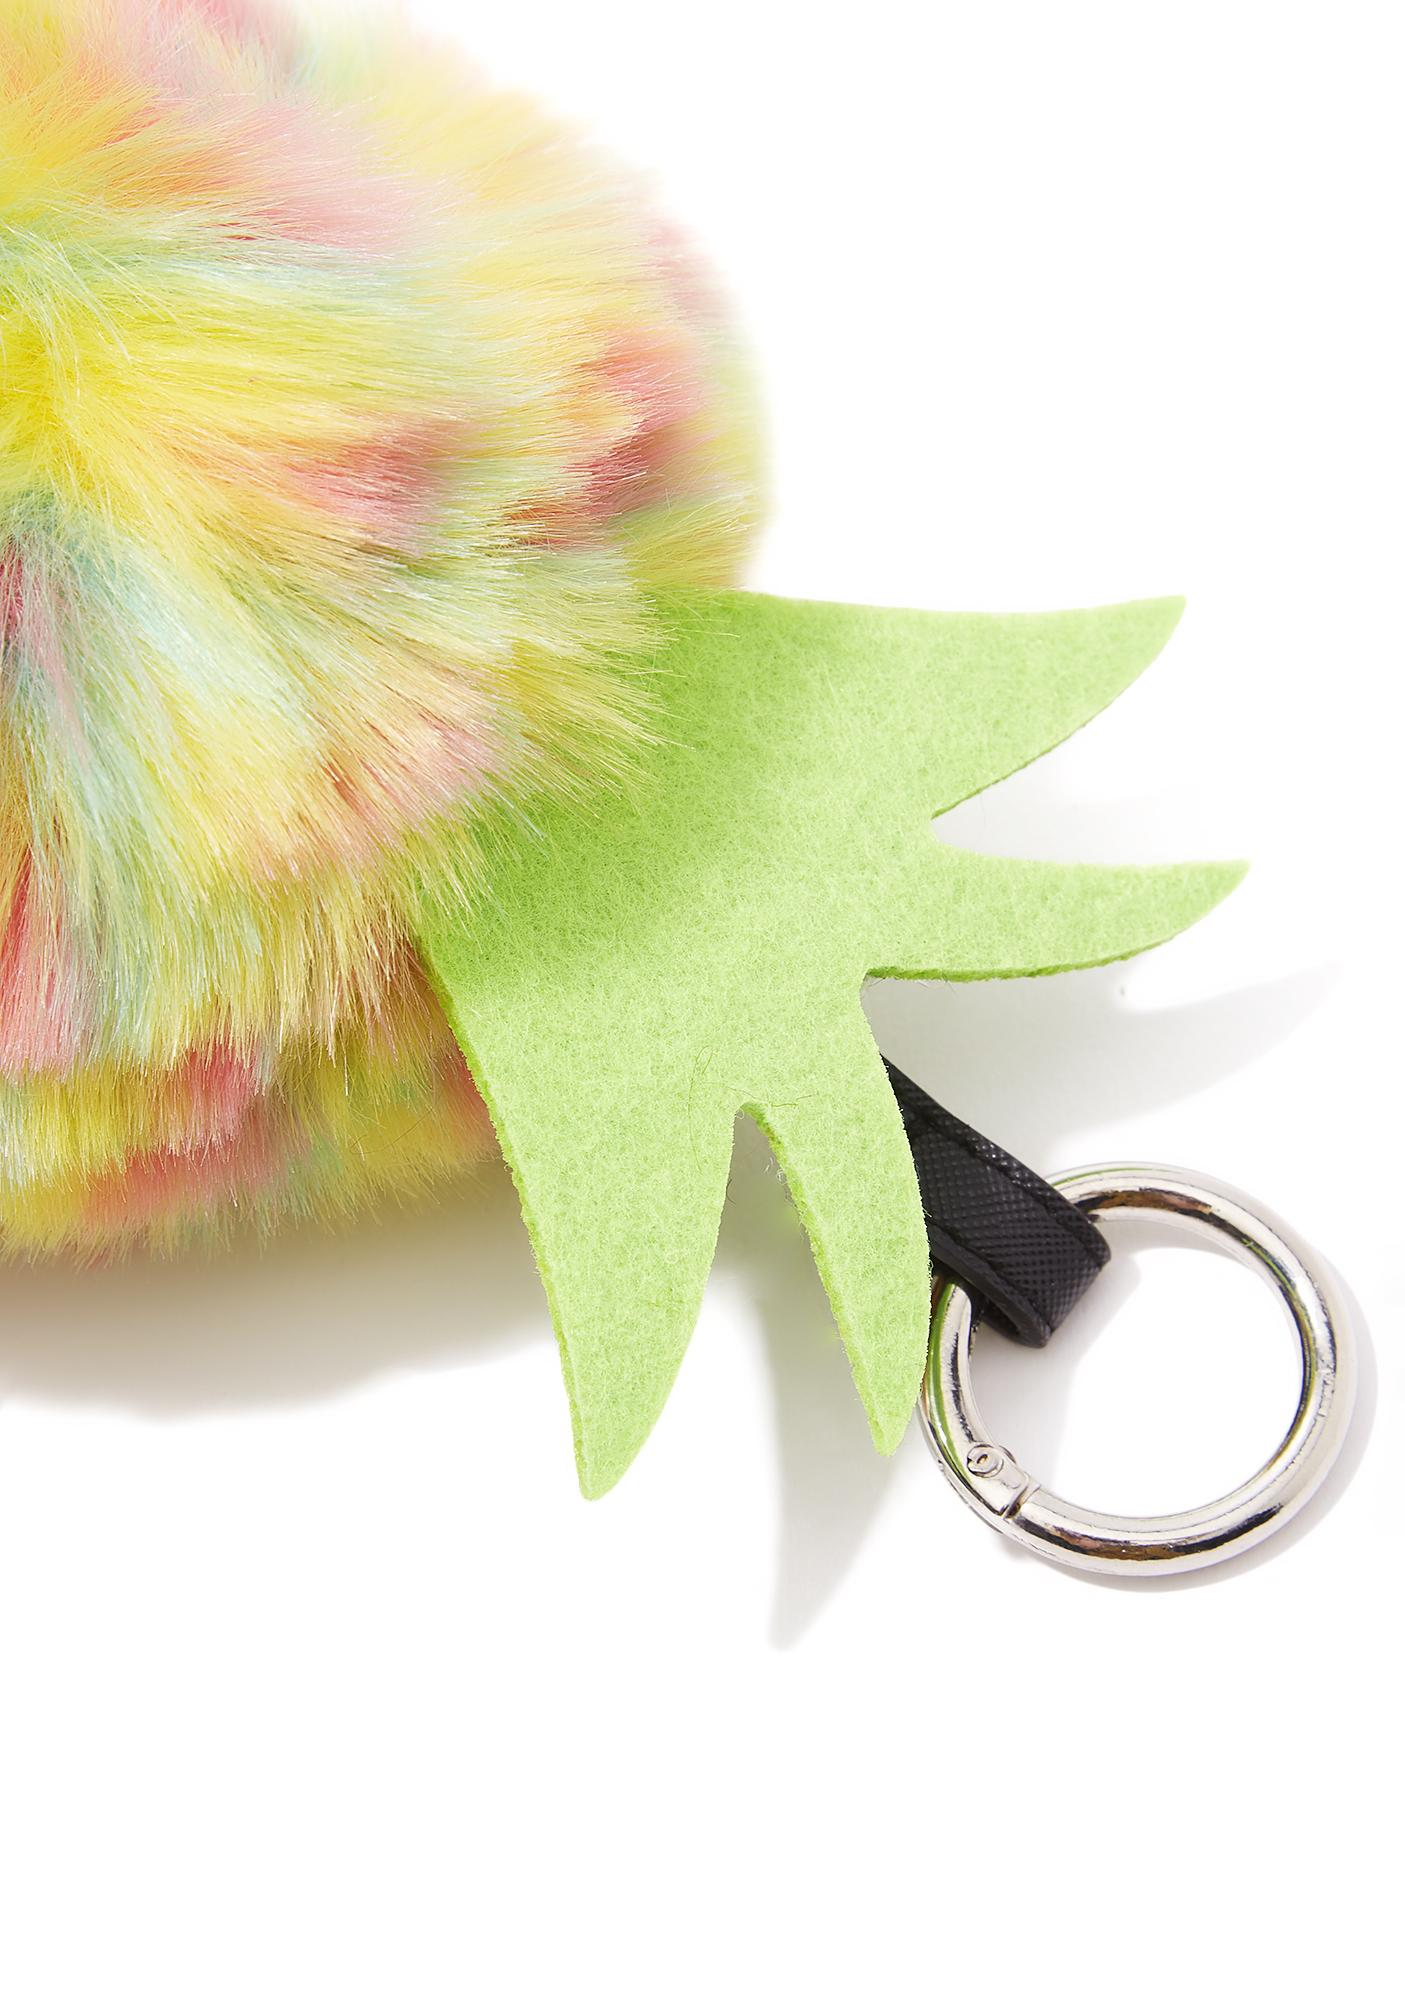 Juicy Bite Fuzzy Pineapple Keychain